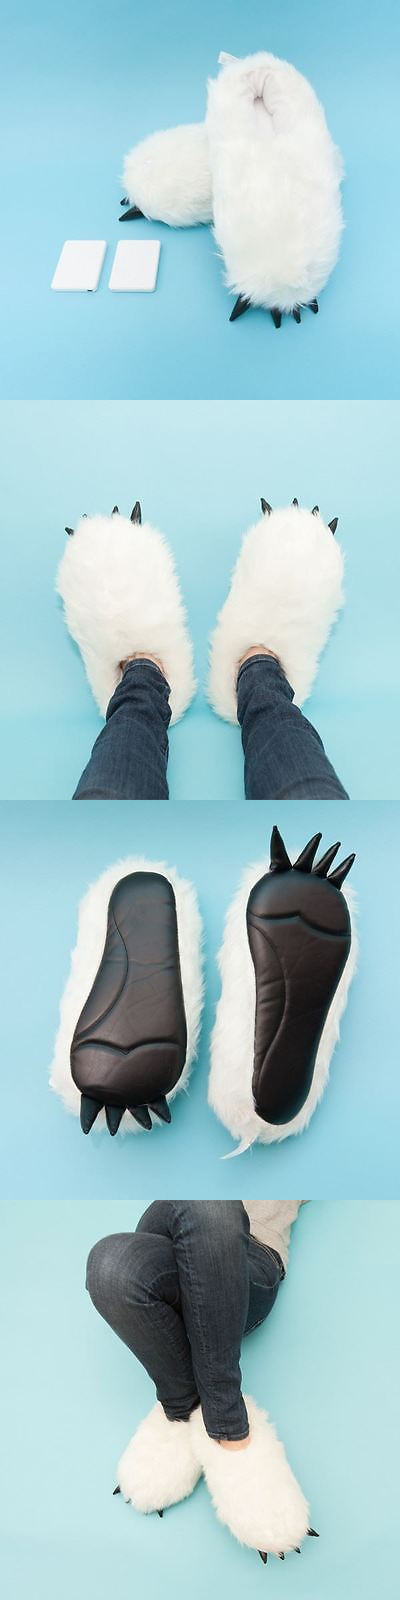 a0776ff514bb Slippers 163550  Yeti Heated Slippers Footwarmers Wireless Cordless  Rechargeable By Smoko -  BUY IT NOW ONLY   64.99 on eBay!